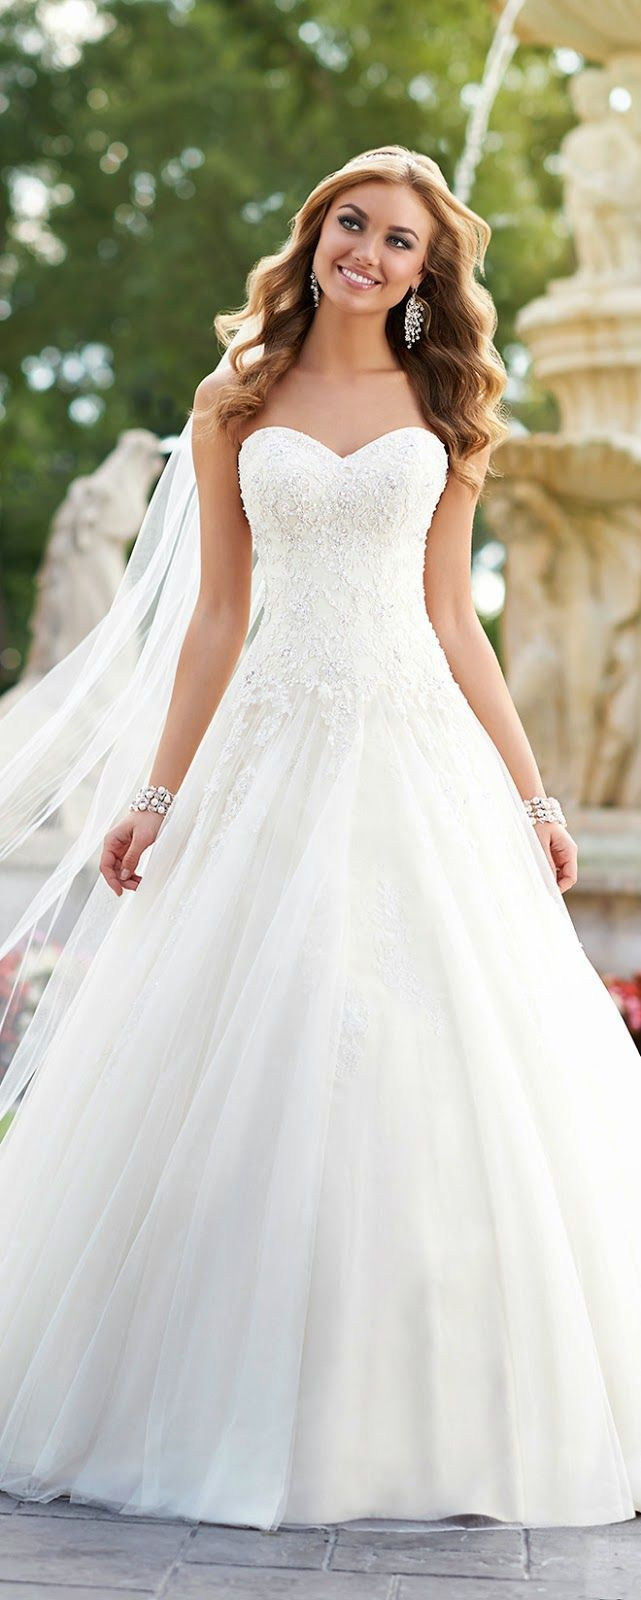 Vestido de novia Otoño 2015 Stella York bridal collection   Supernatural Styl